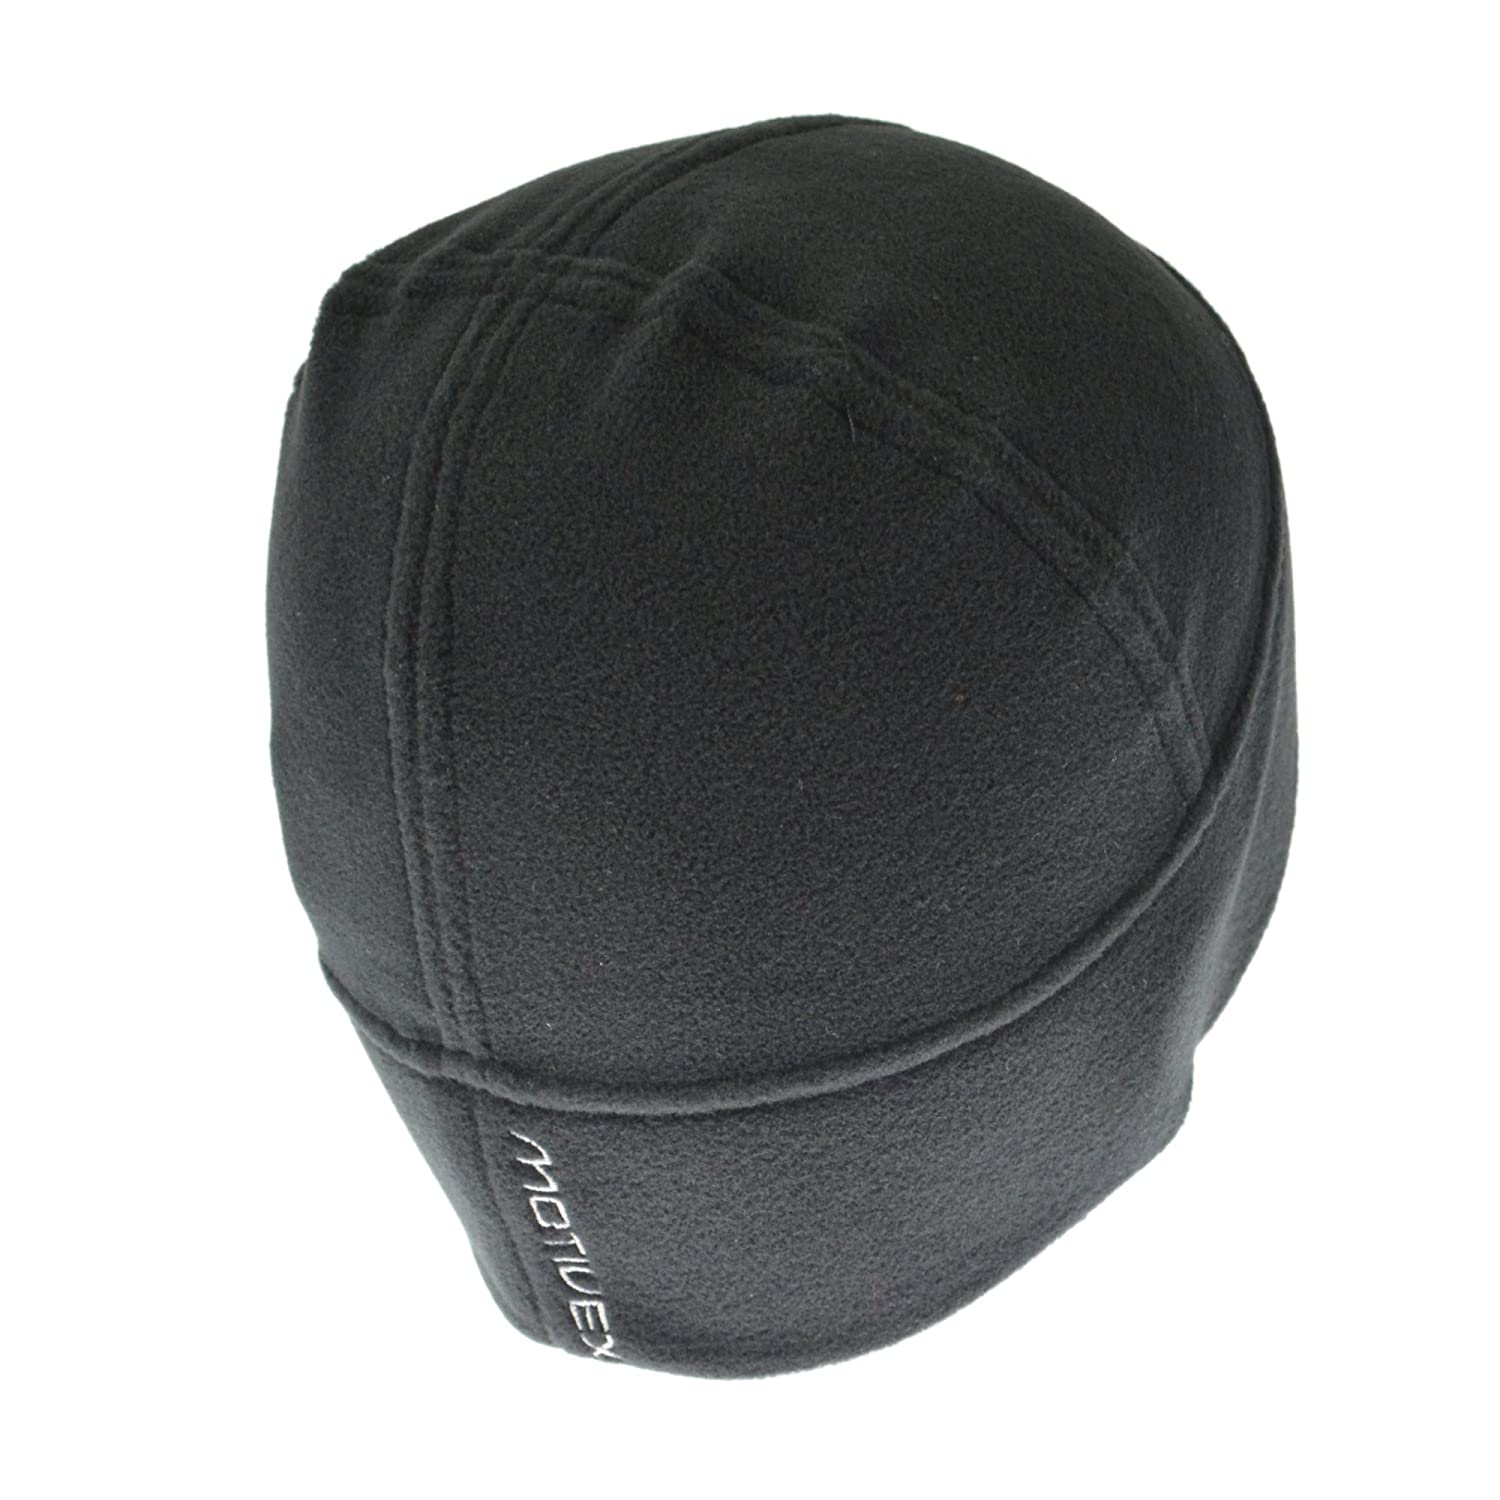 Berretto MOTIVEX grandmummy capitano, Beanie in Polartec micro-pile colore: Nero dimensioni S-XL